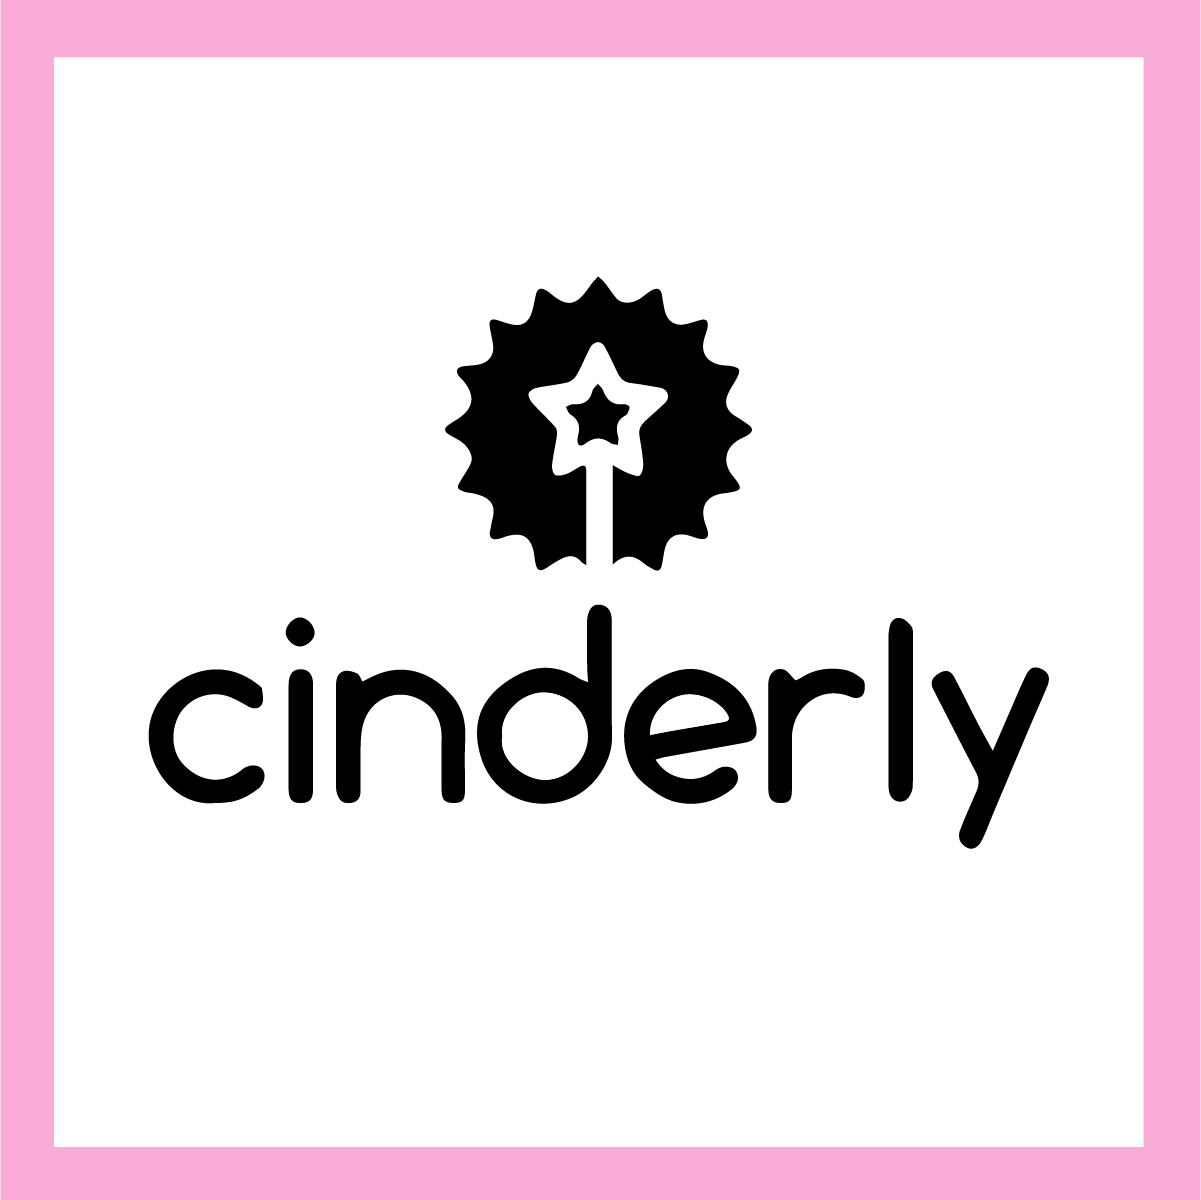 ColorsCollective_cinderly-06.png